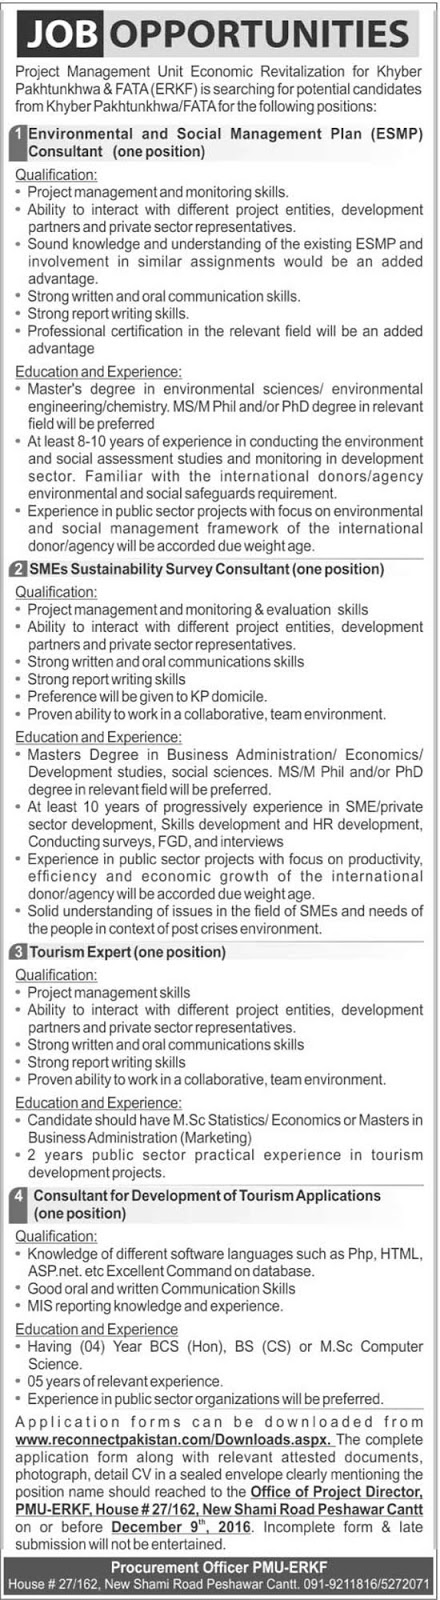 PMU Economic Revitalization KPK Jobs